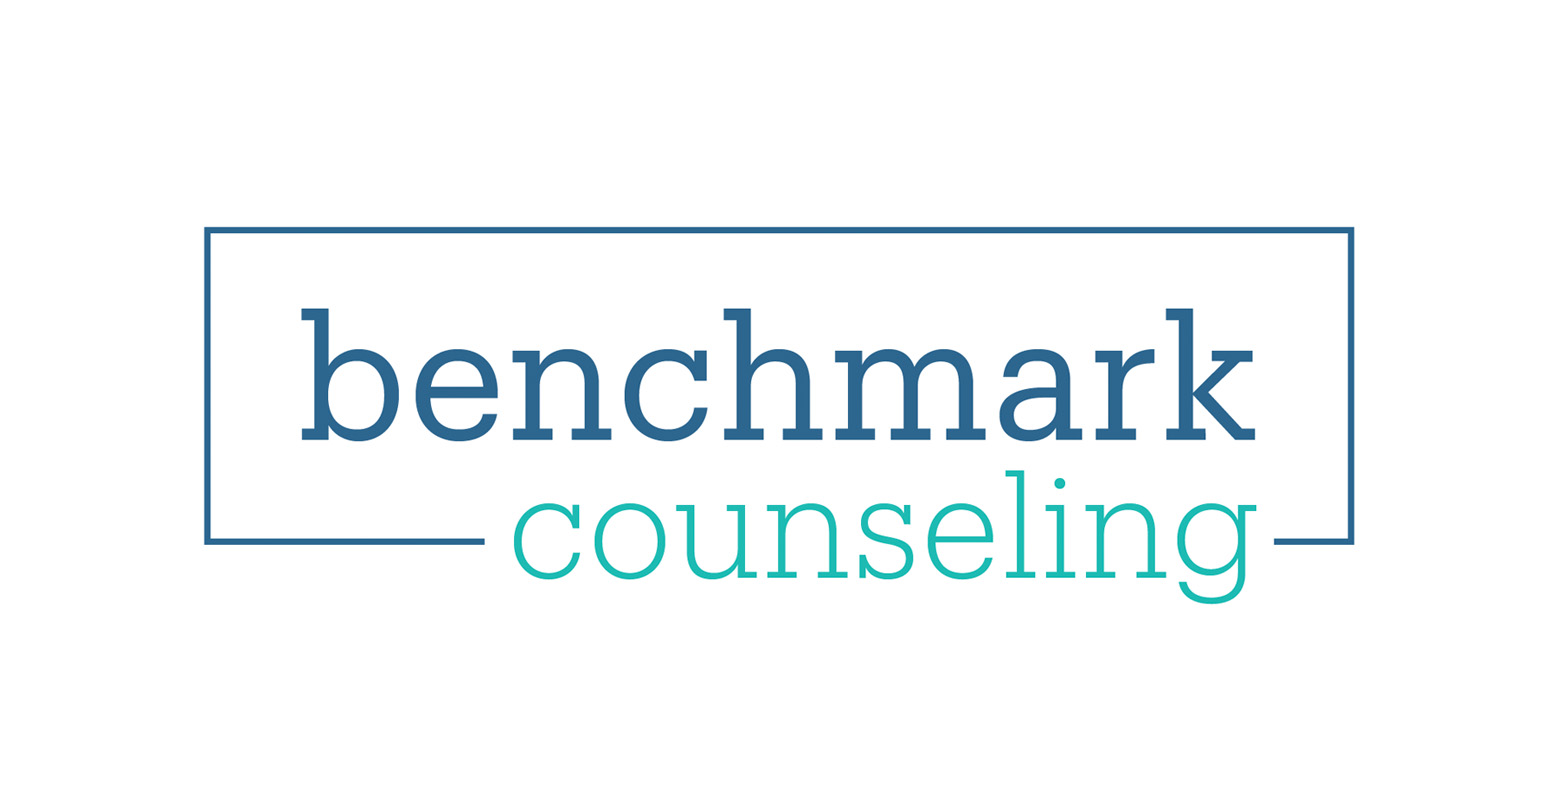 Benchmark Counseling